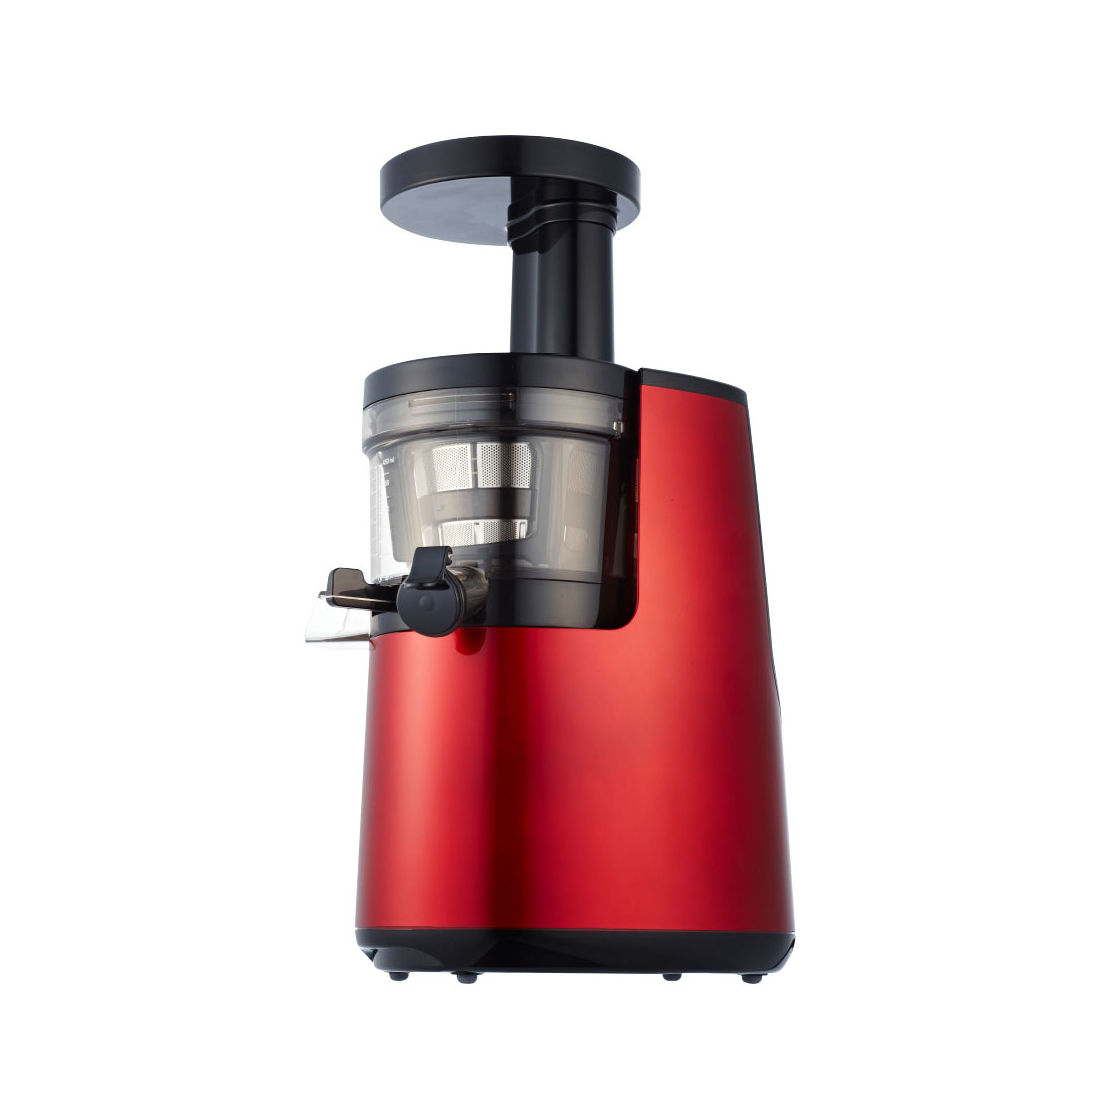 Slow Juicer Vandenborre : Hurom HH Elite Slow Juicer Free Shipping Over $100 echolife.com.au